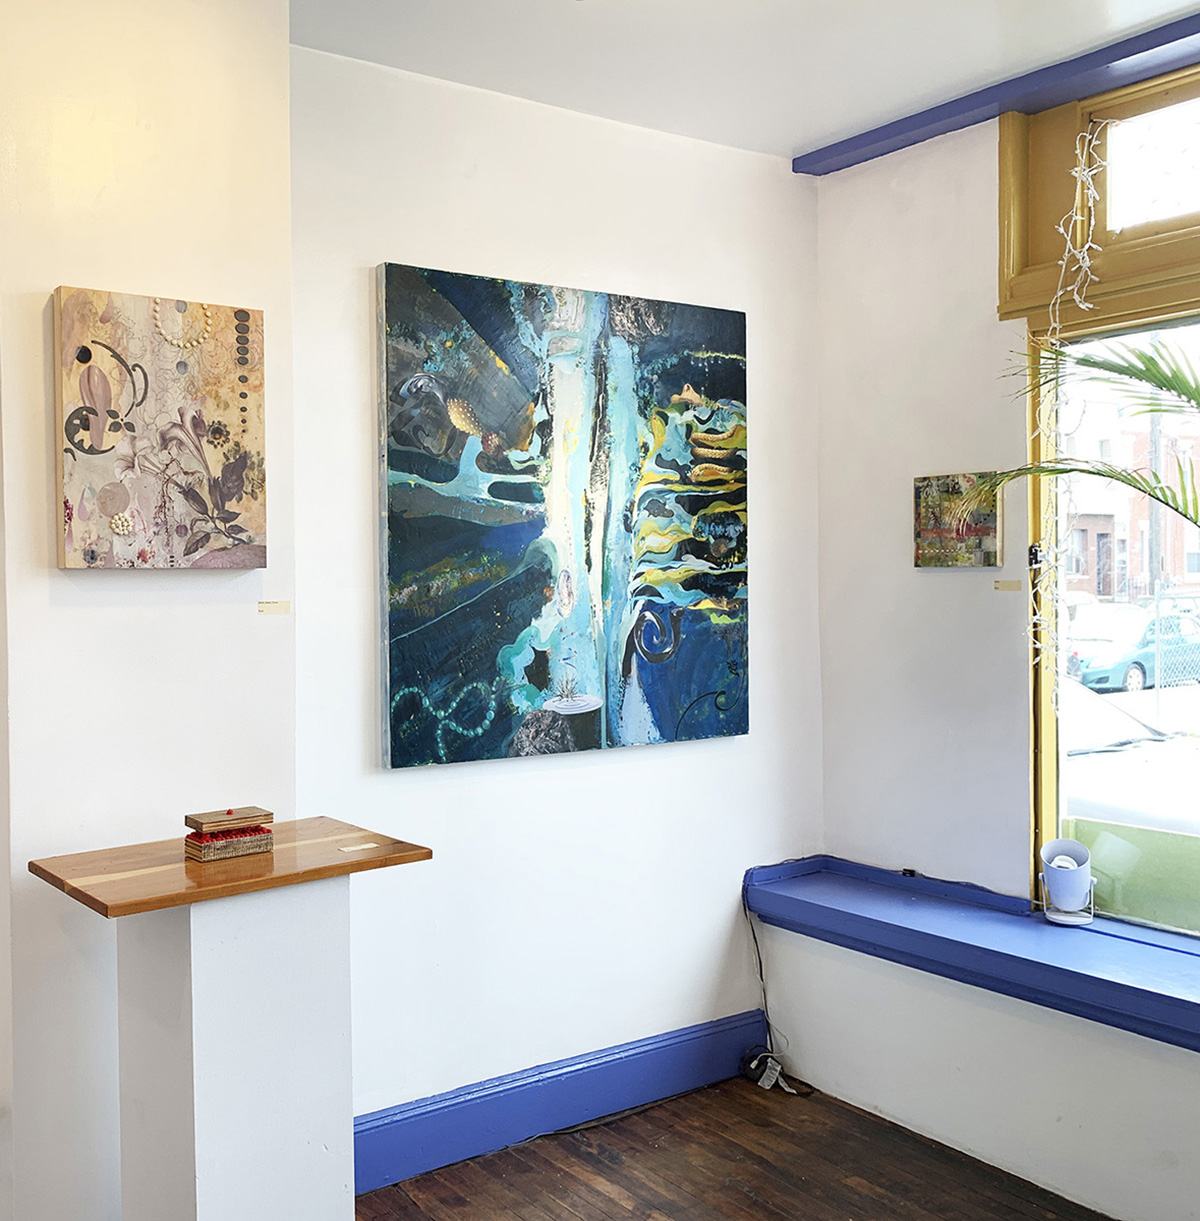 5 Reasons Why I Installed My Solo Gallery Show During Covid19Quarantine